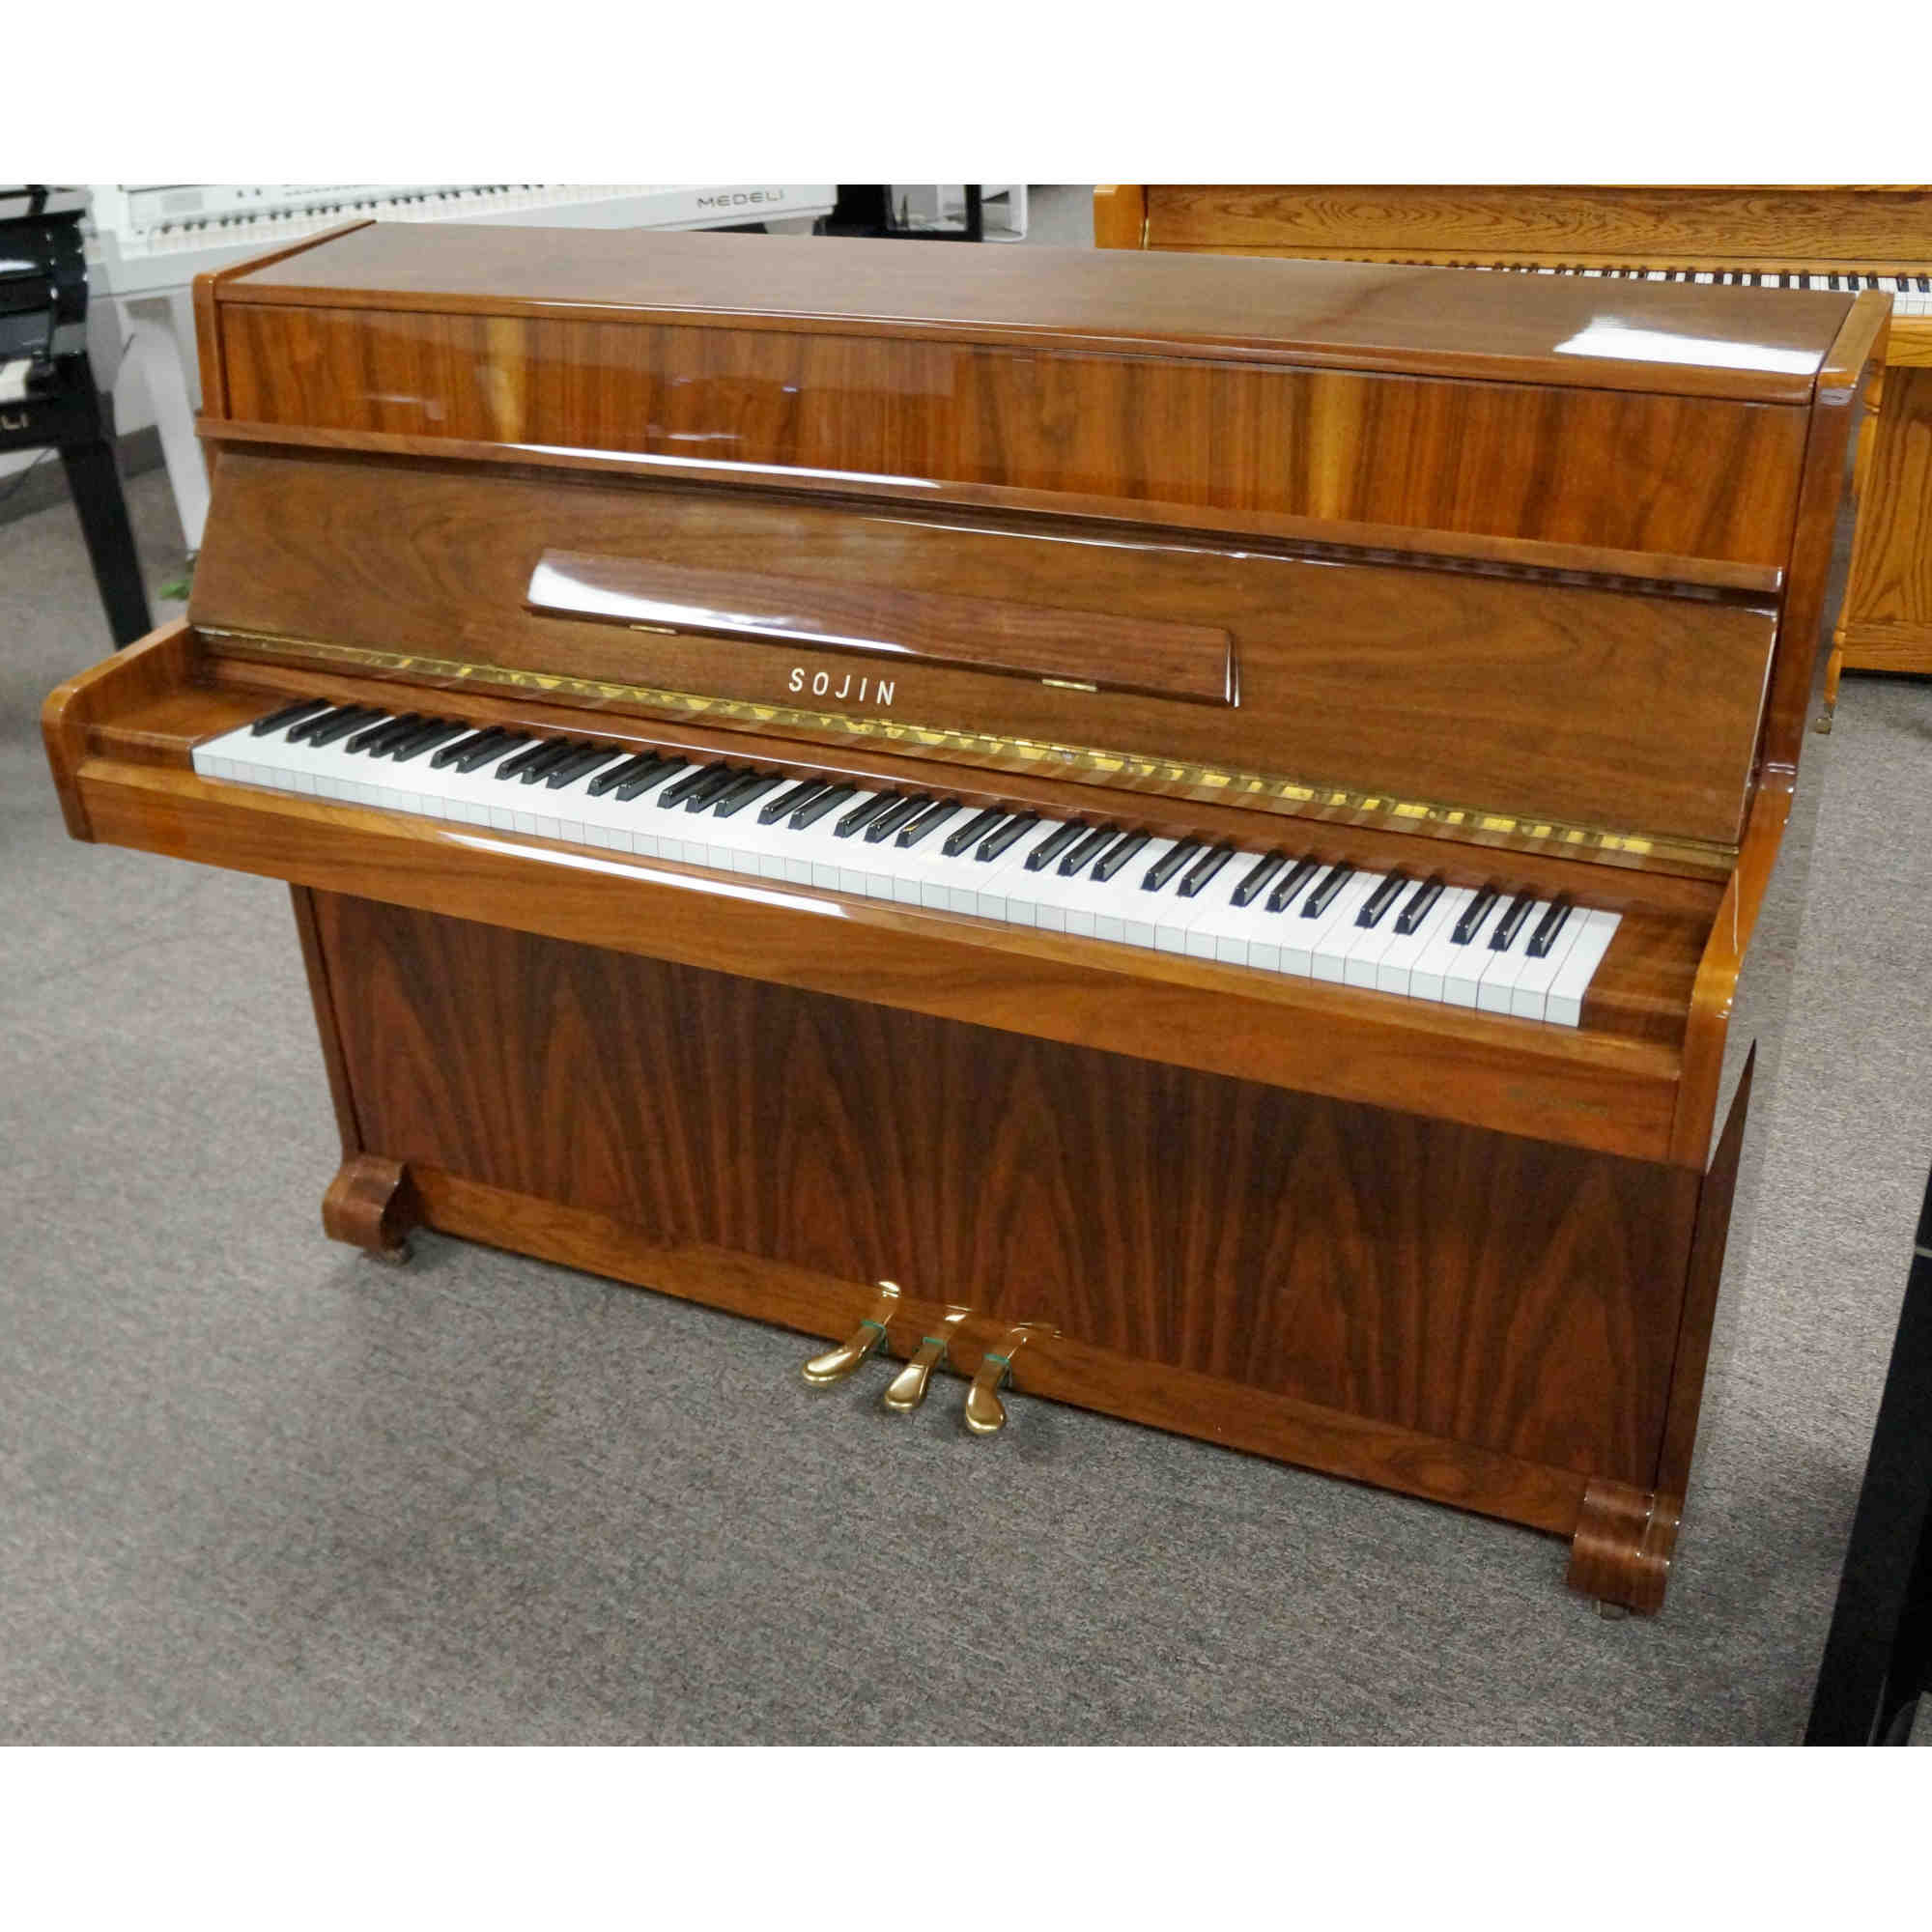 Sojin Studio Piano Ltd Grain Walnut Polish